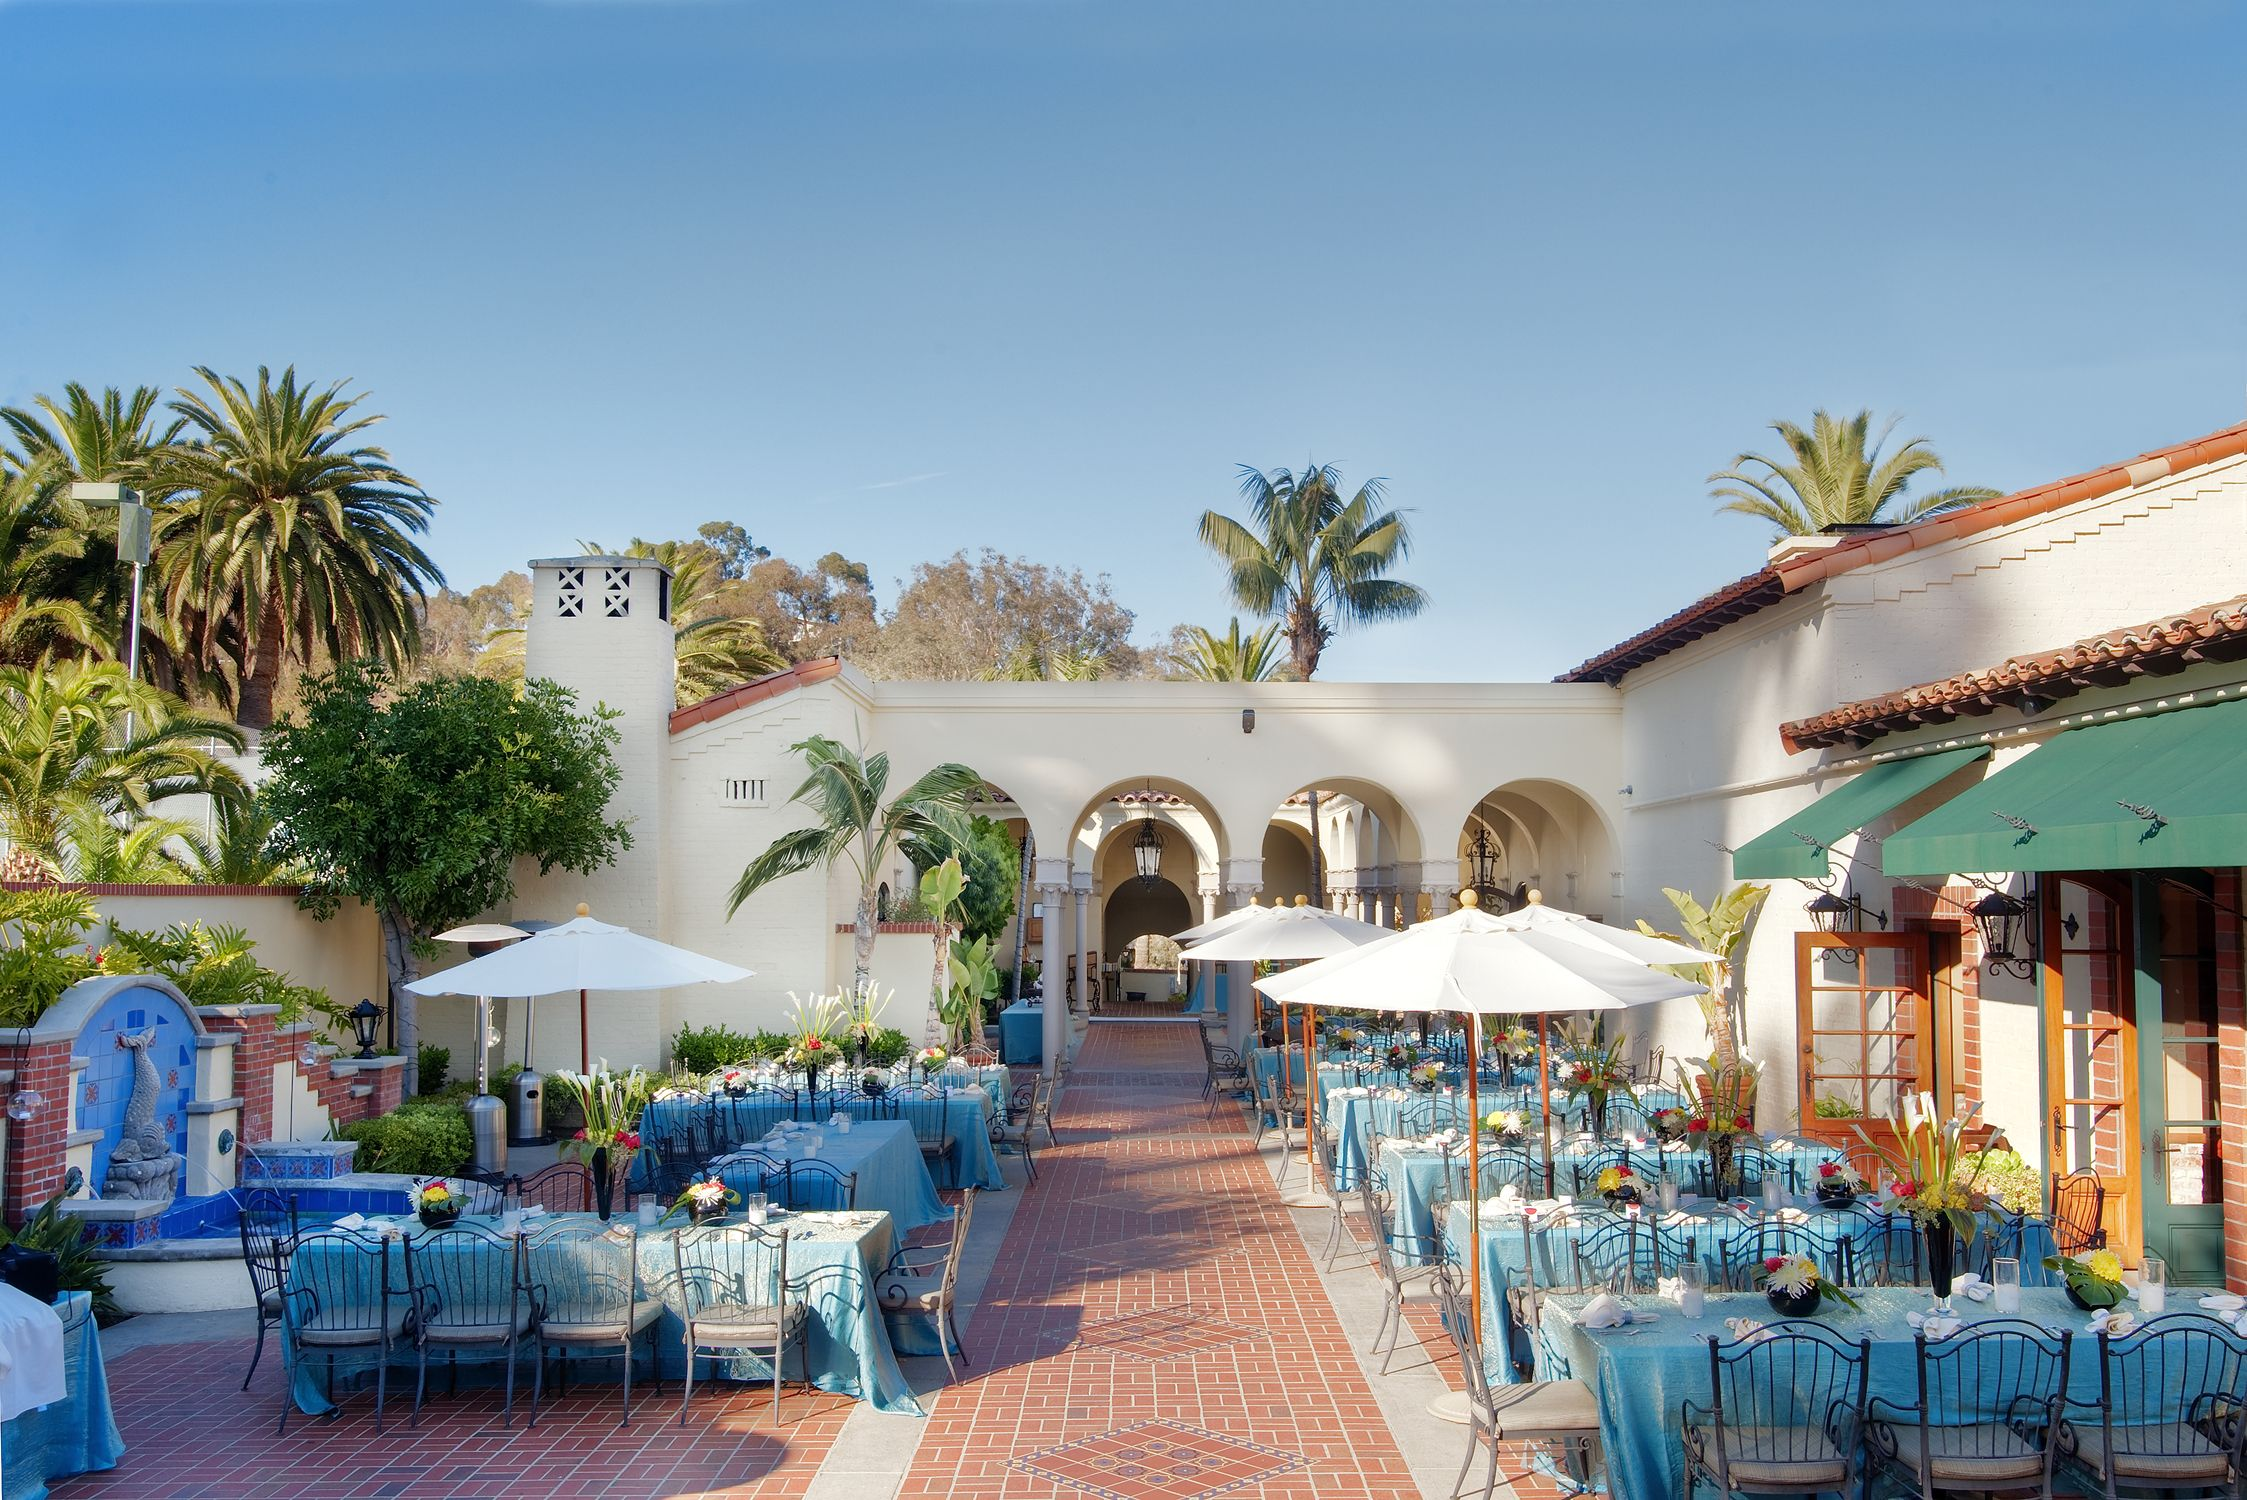 The Catalina Country Club is the perfect solution for